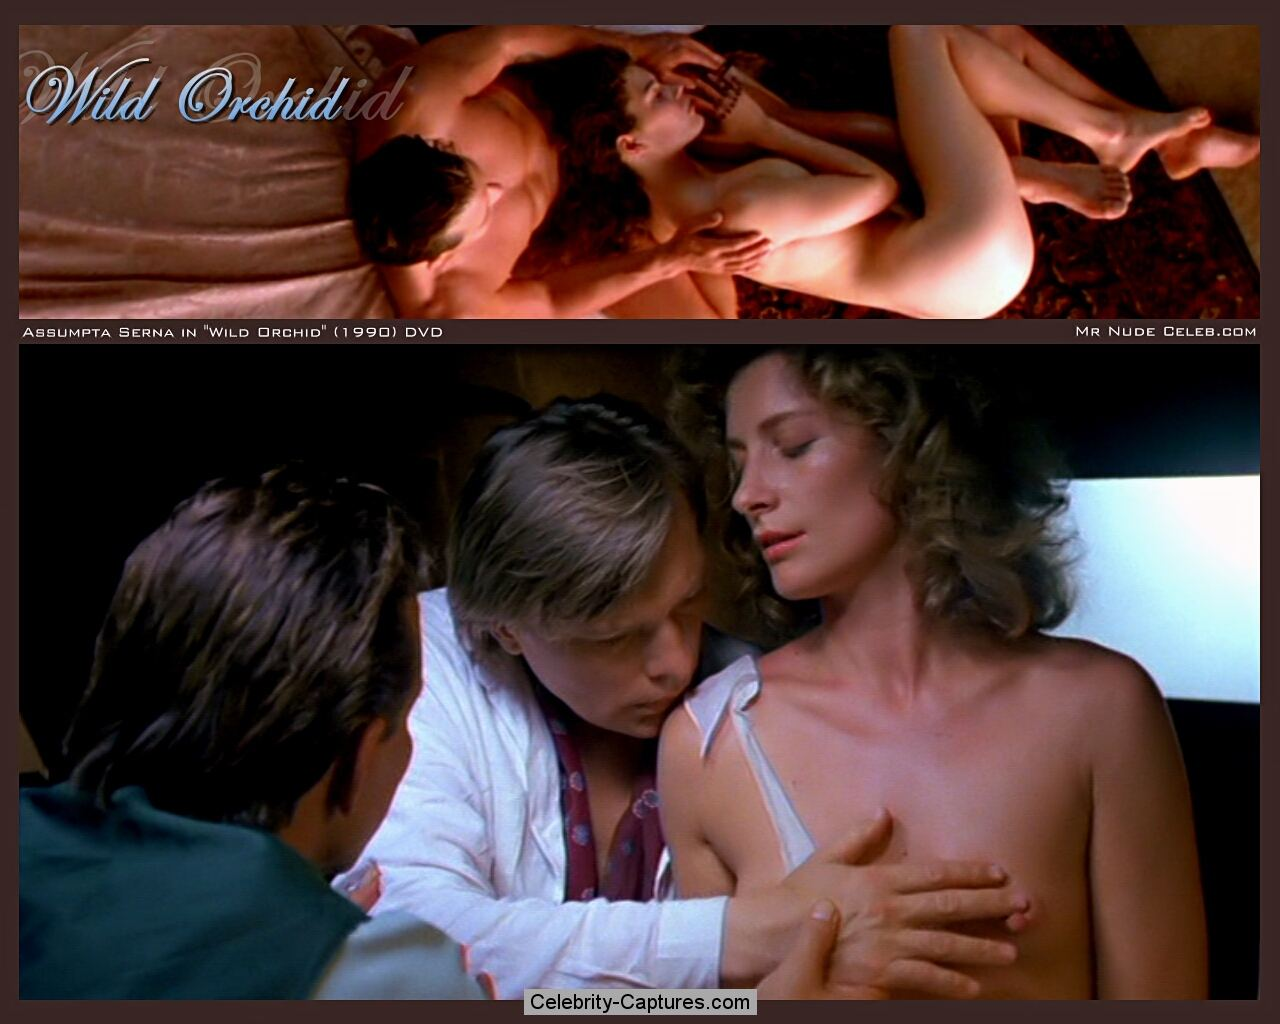 Assumpta Serna topless in the car scenes from Wild Orchid: www.celebrity-captures.com/posts/0000131.shtml